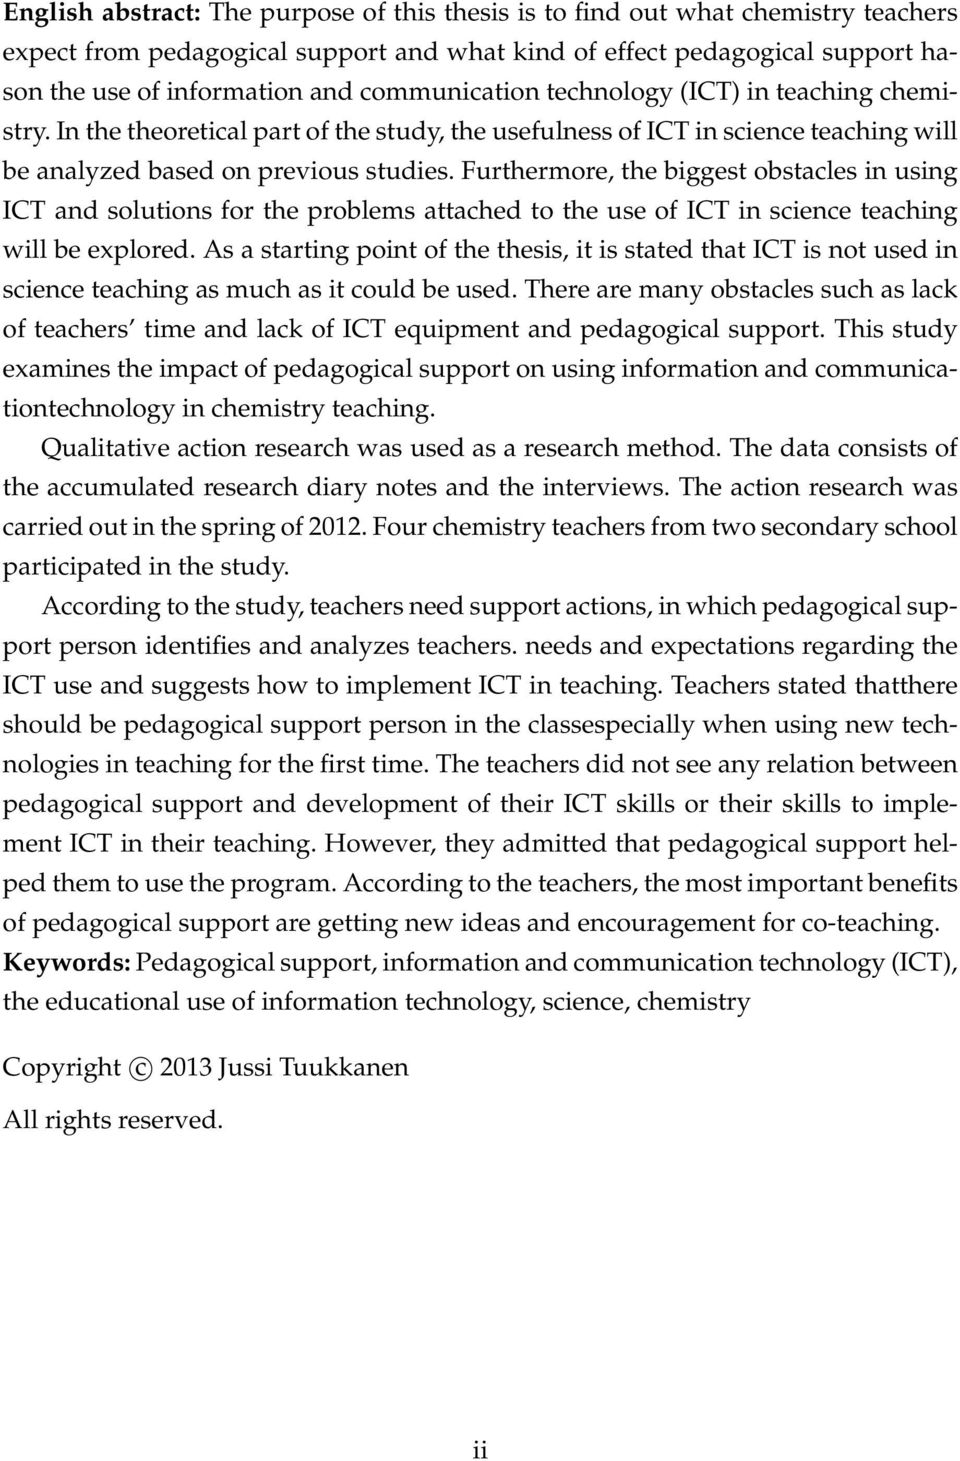 Furthermore, the biggest obstacles in using ICT and solutions for the problems attached to the use of ICT in science teaching will be explored.